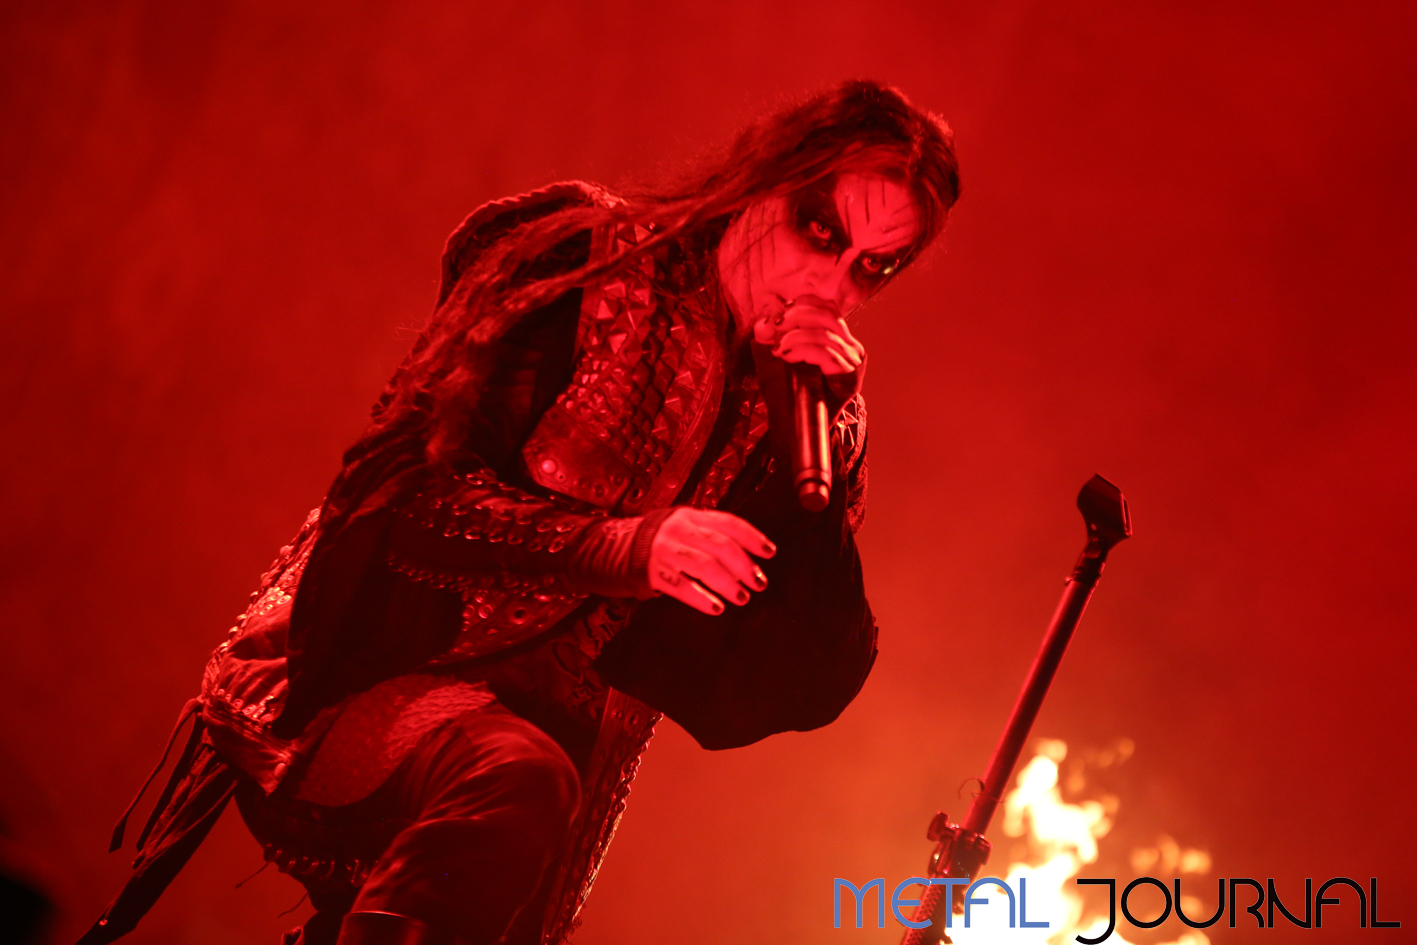 dimmu borgir rock fest 18 - metal journal pic 3